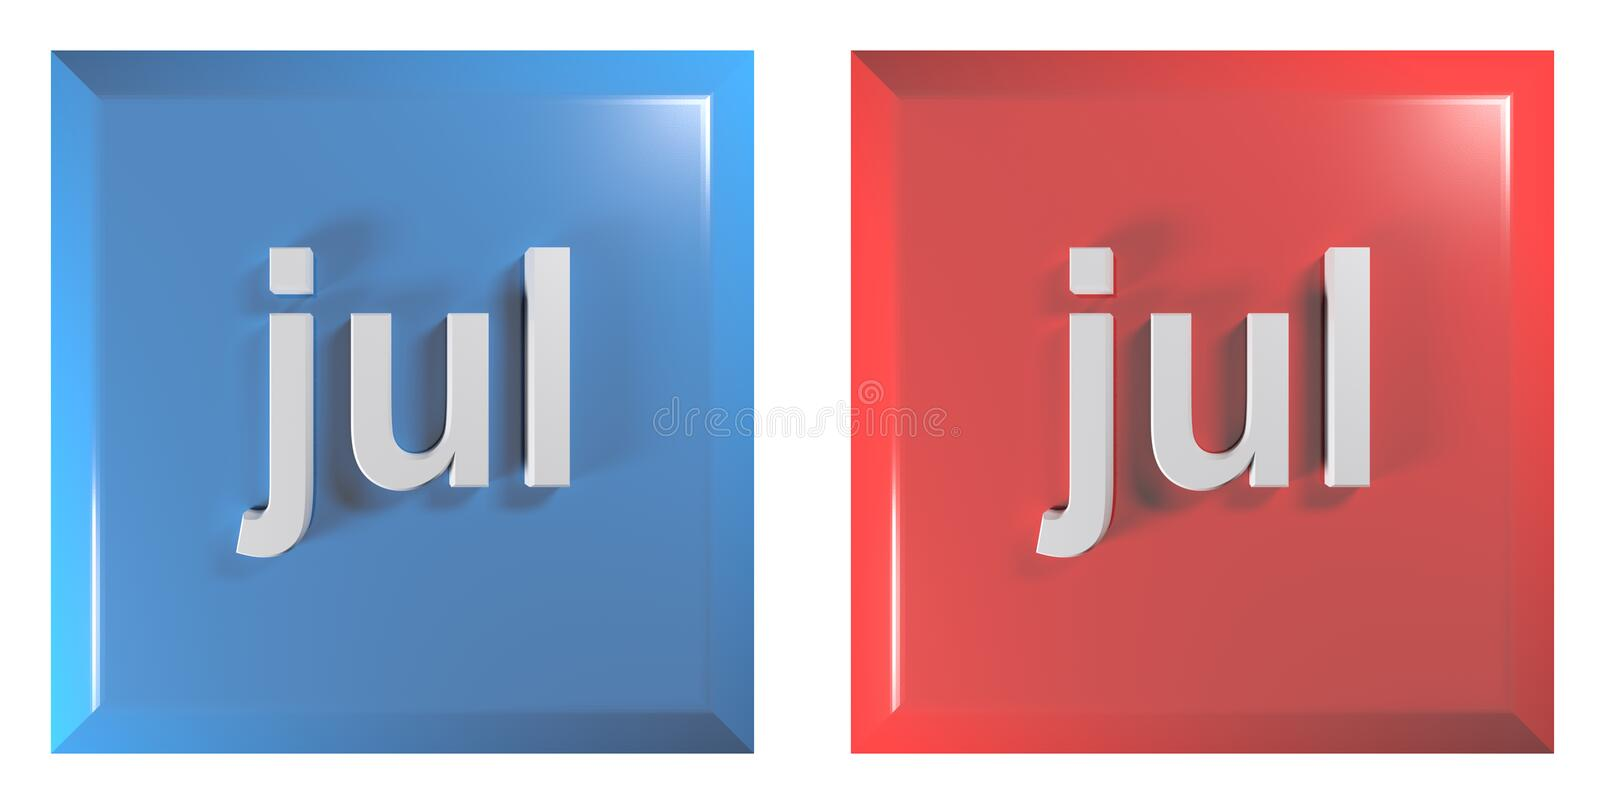 Blue and red couple of square push buttons JULY - 3D rendering illustration. A couple of square push buttons, blue and red, isolated on white background, with stock illustration